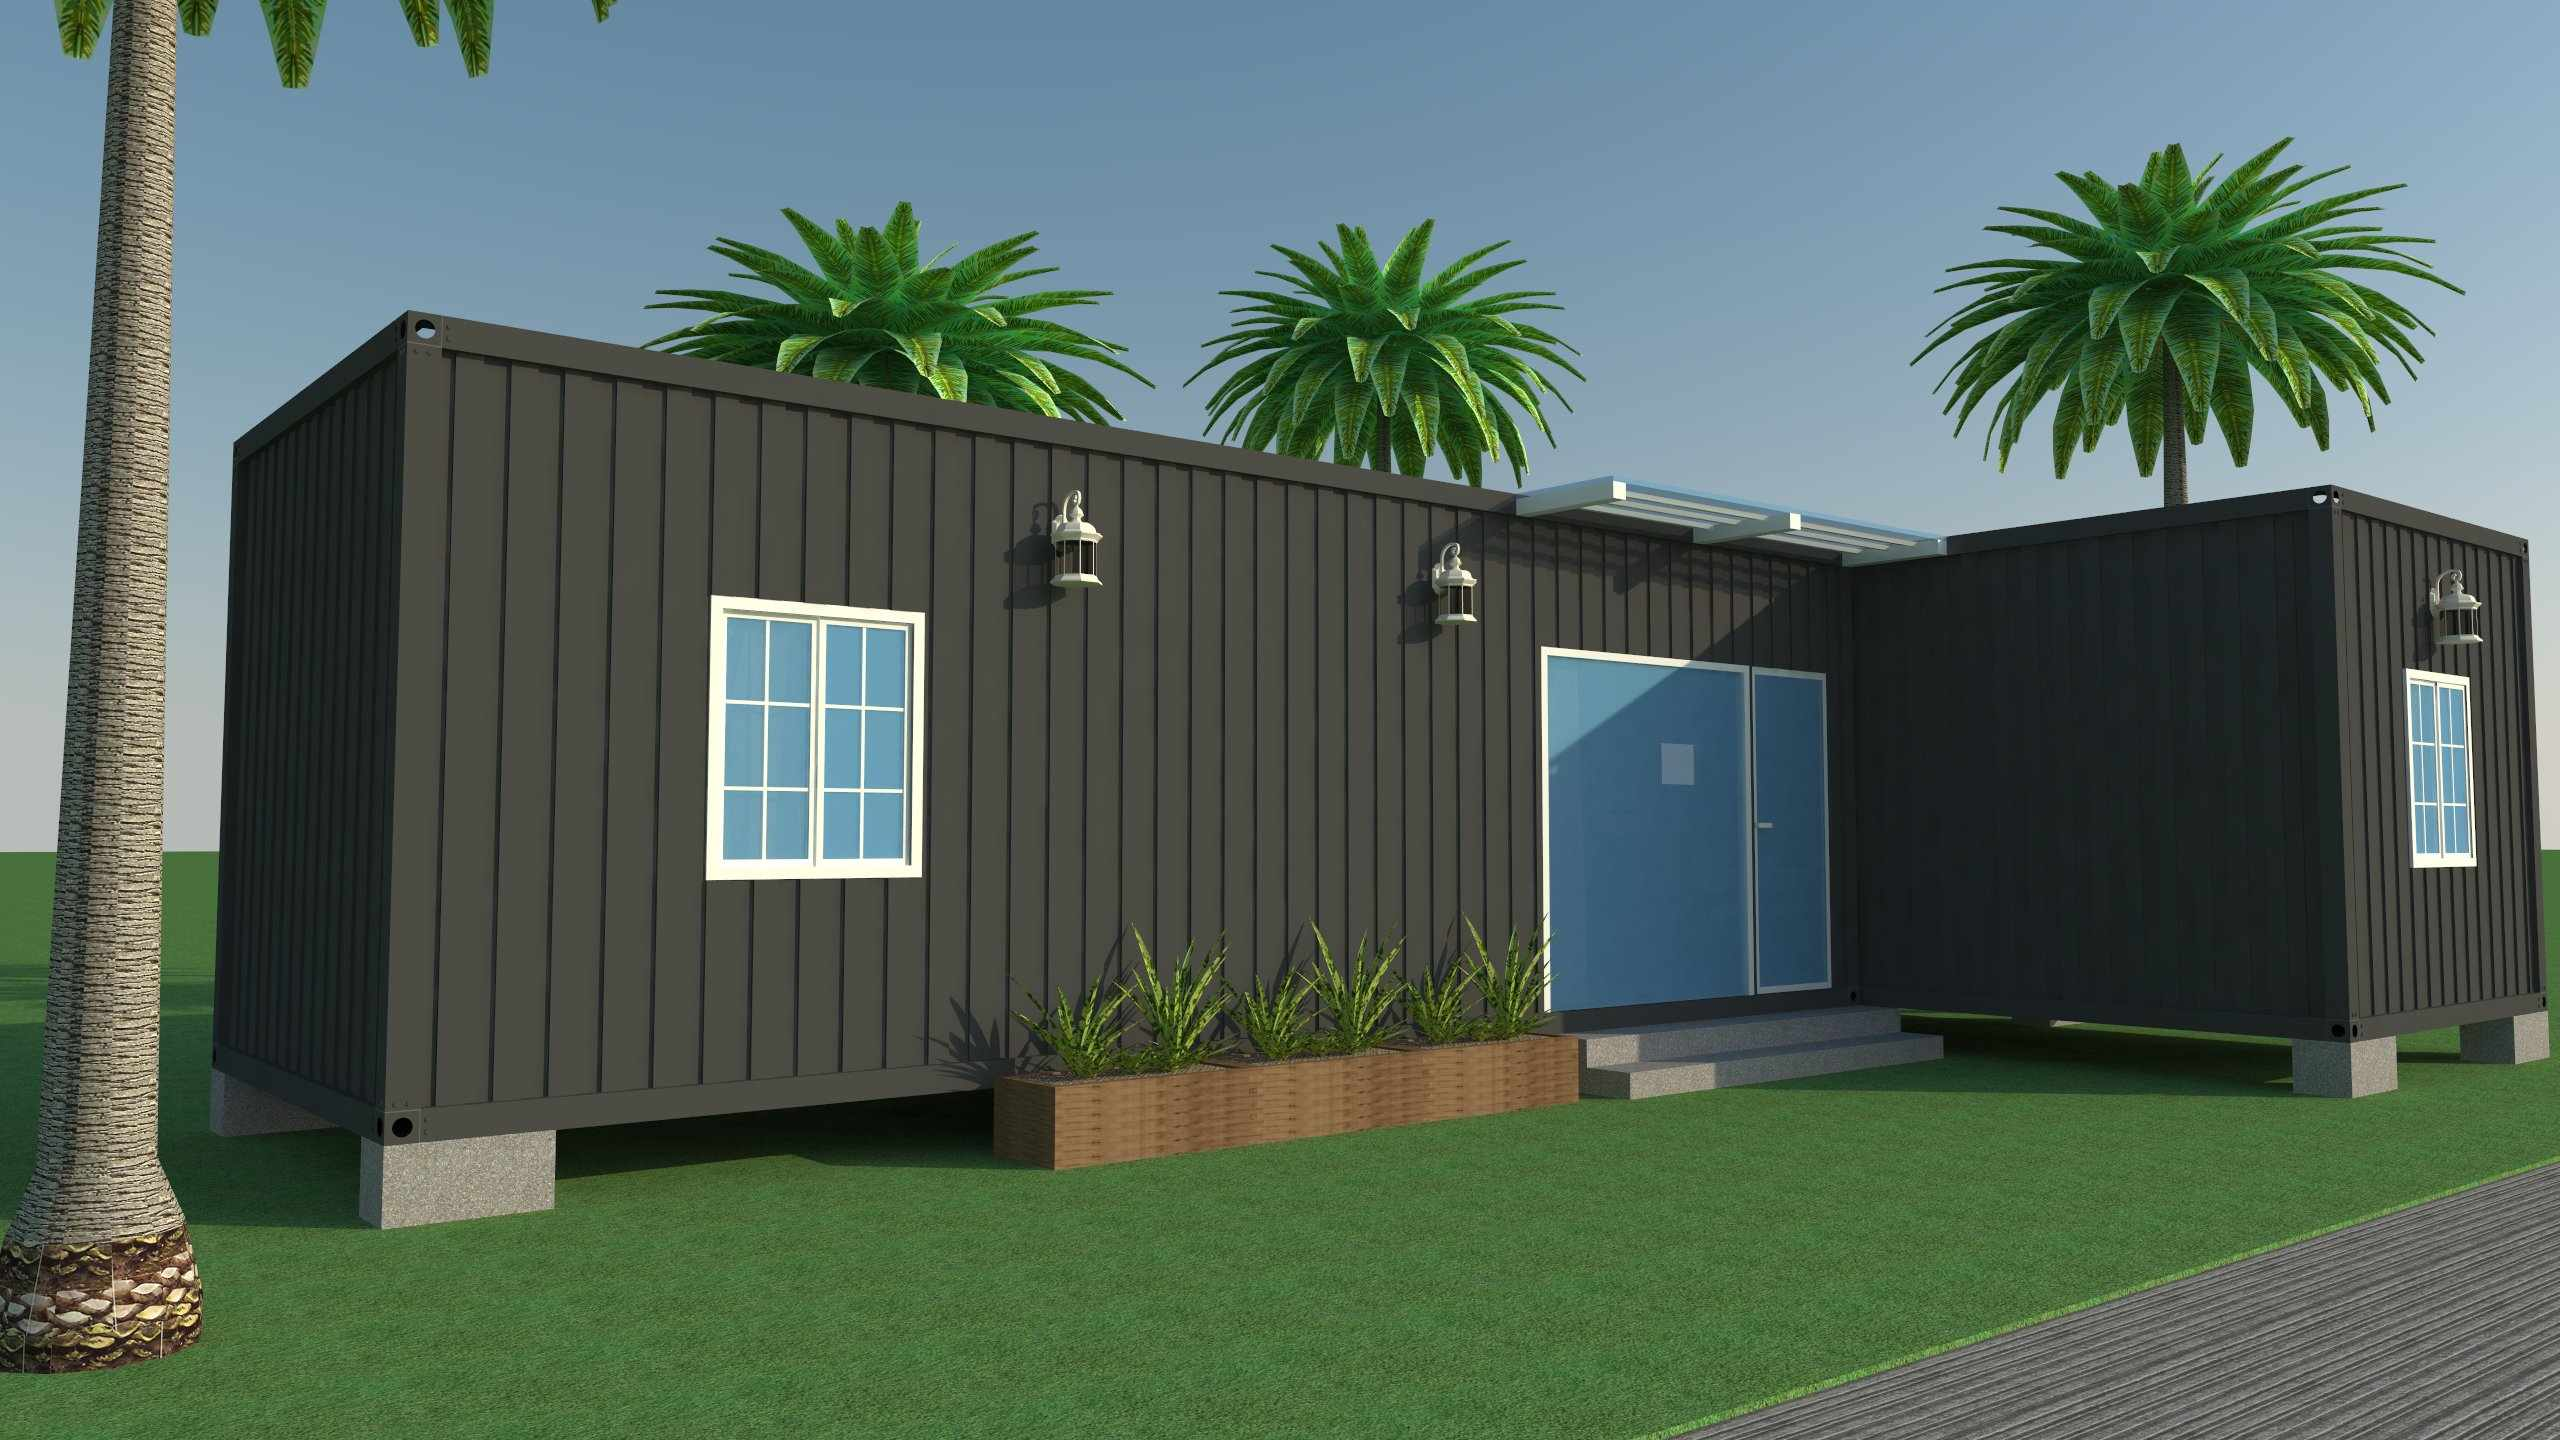 WELLCAMP, WELLCAMP prefab house, WELLCAMP container house Eco-Friendly Light Steel Container Villa For Container Resort, Wellcamp CV-1 Container Villa image102